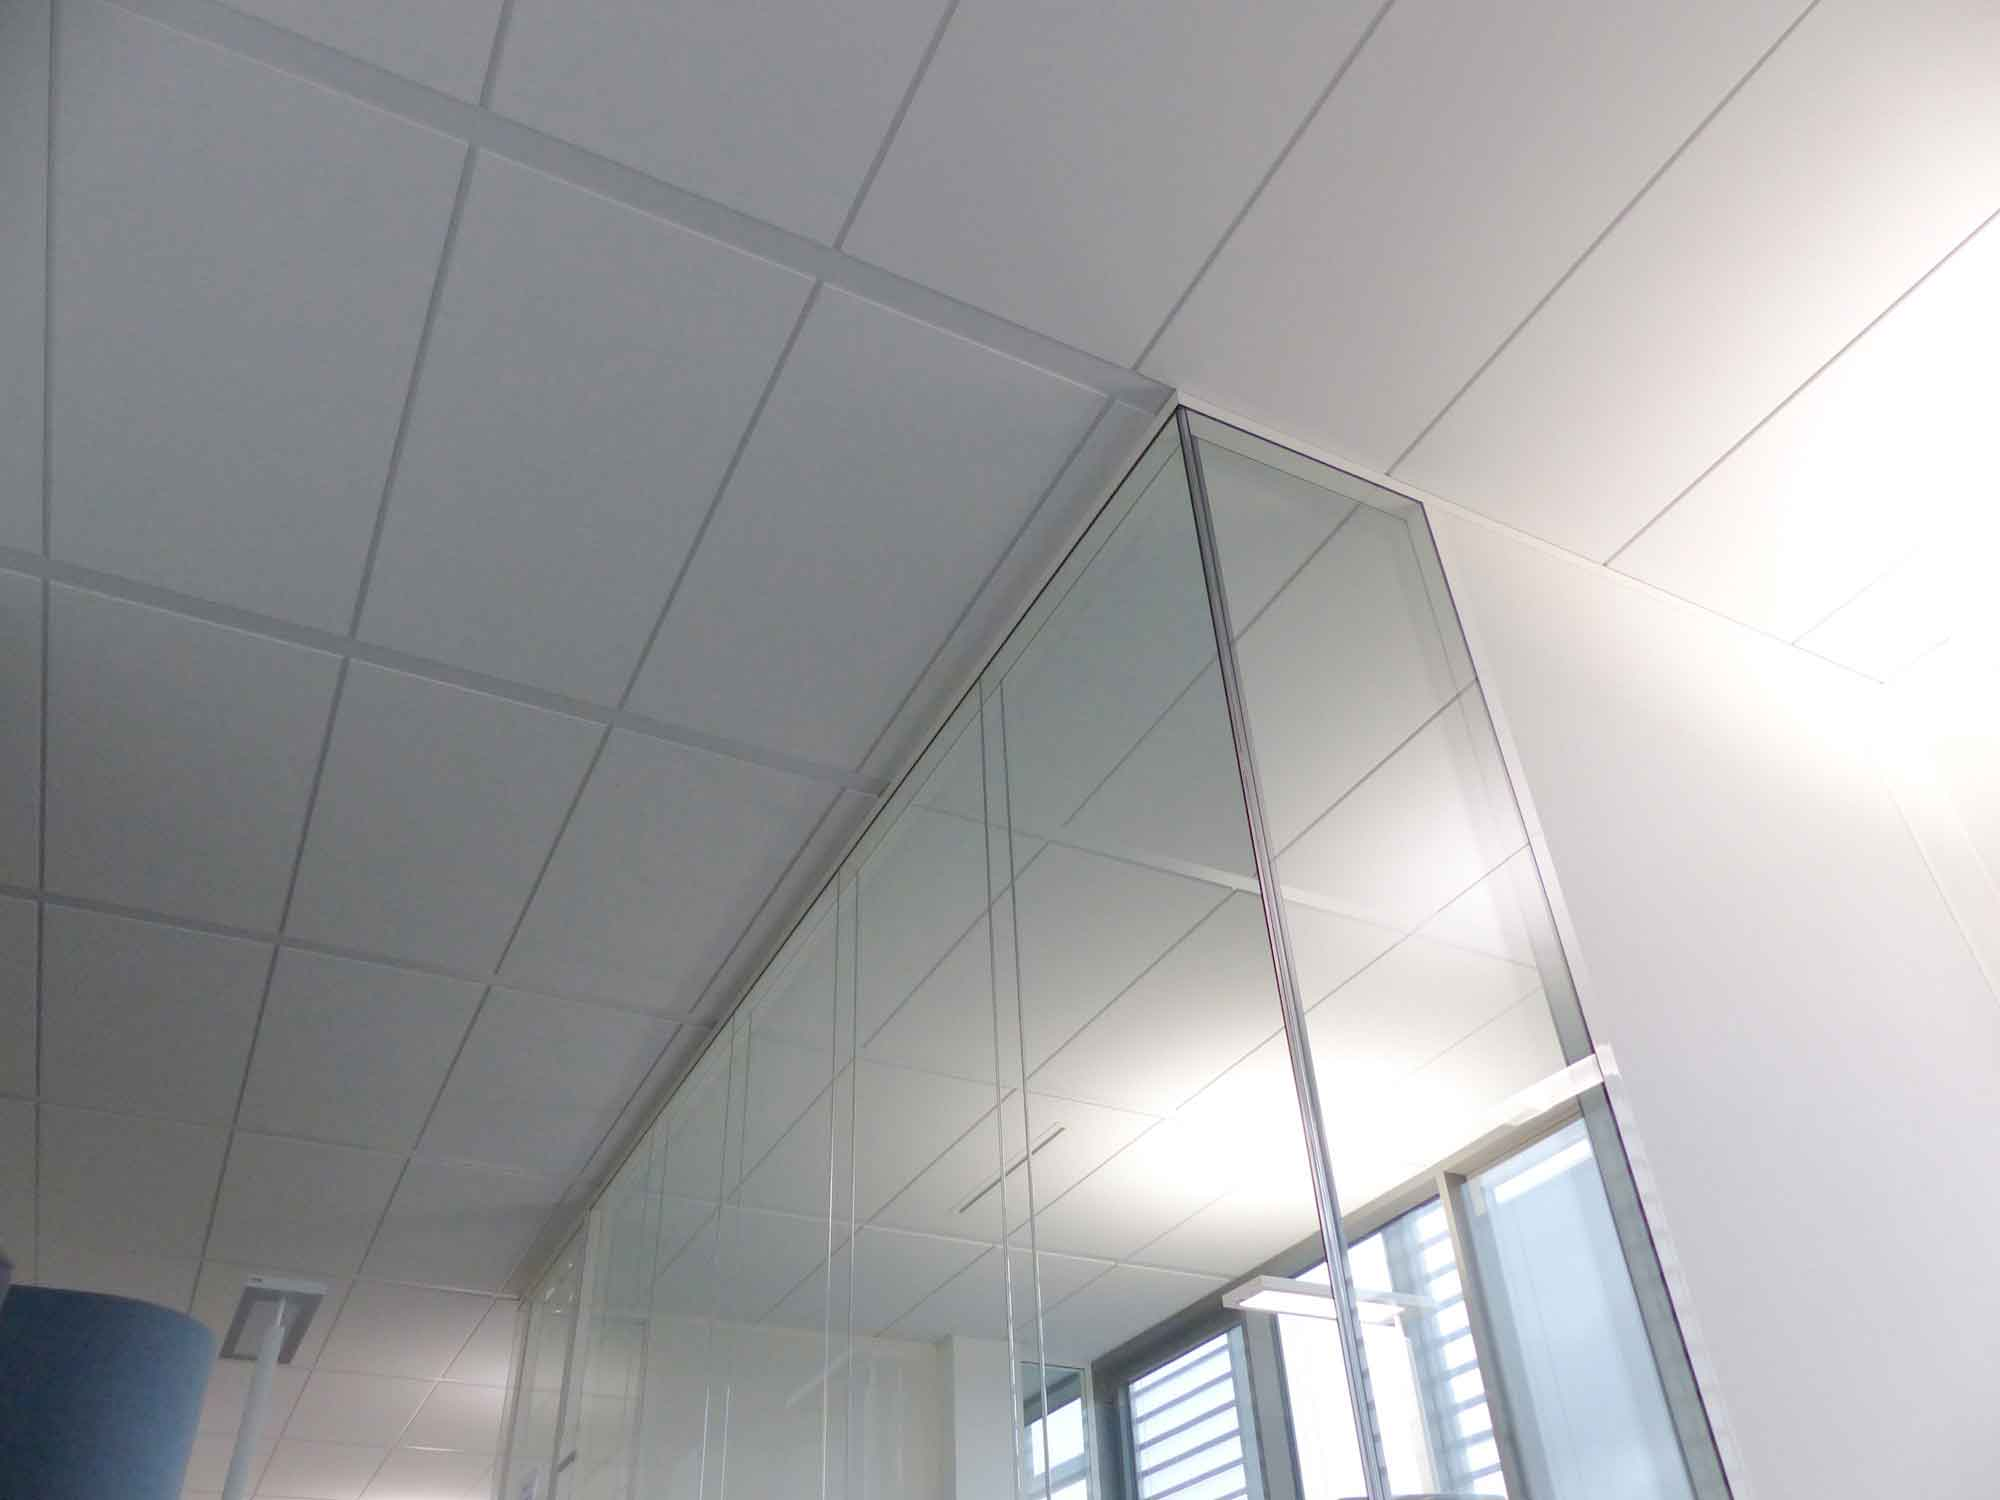 Langlois Sobreti Rennes Roullier St Malo Amenagement Siege Cloison Modulaire Vitree Transparence